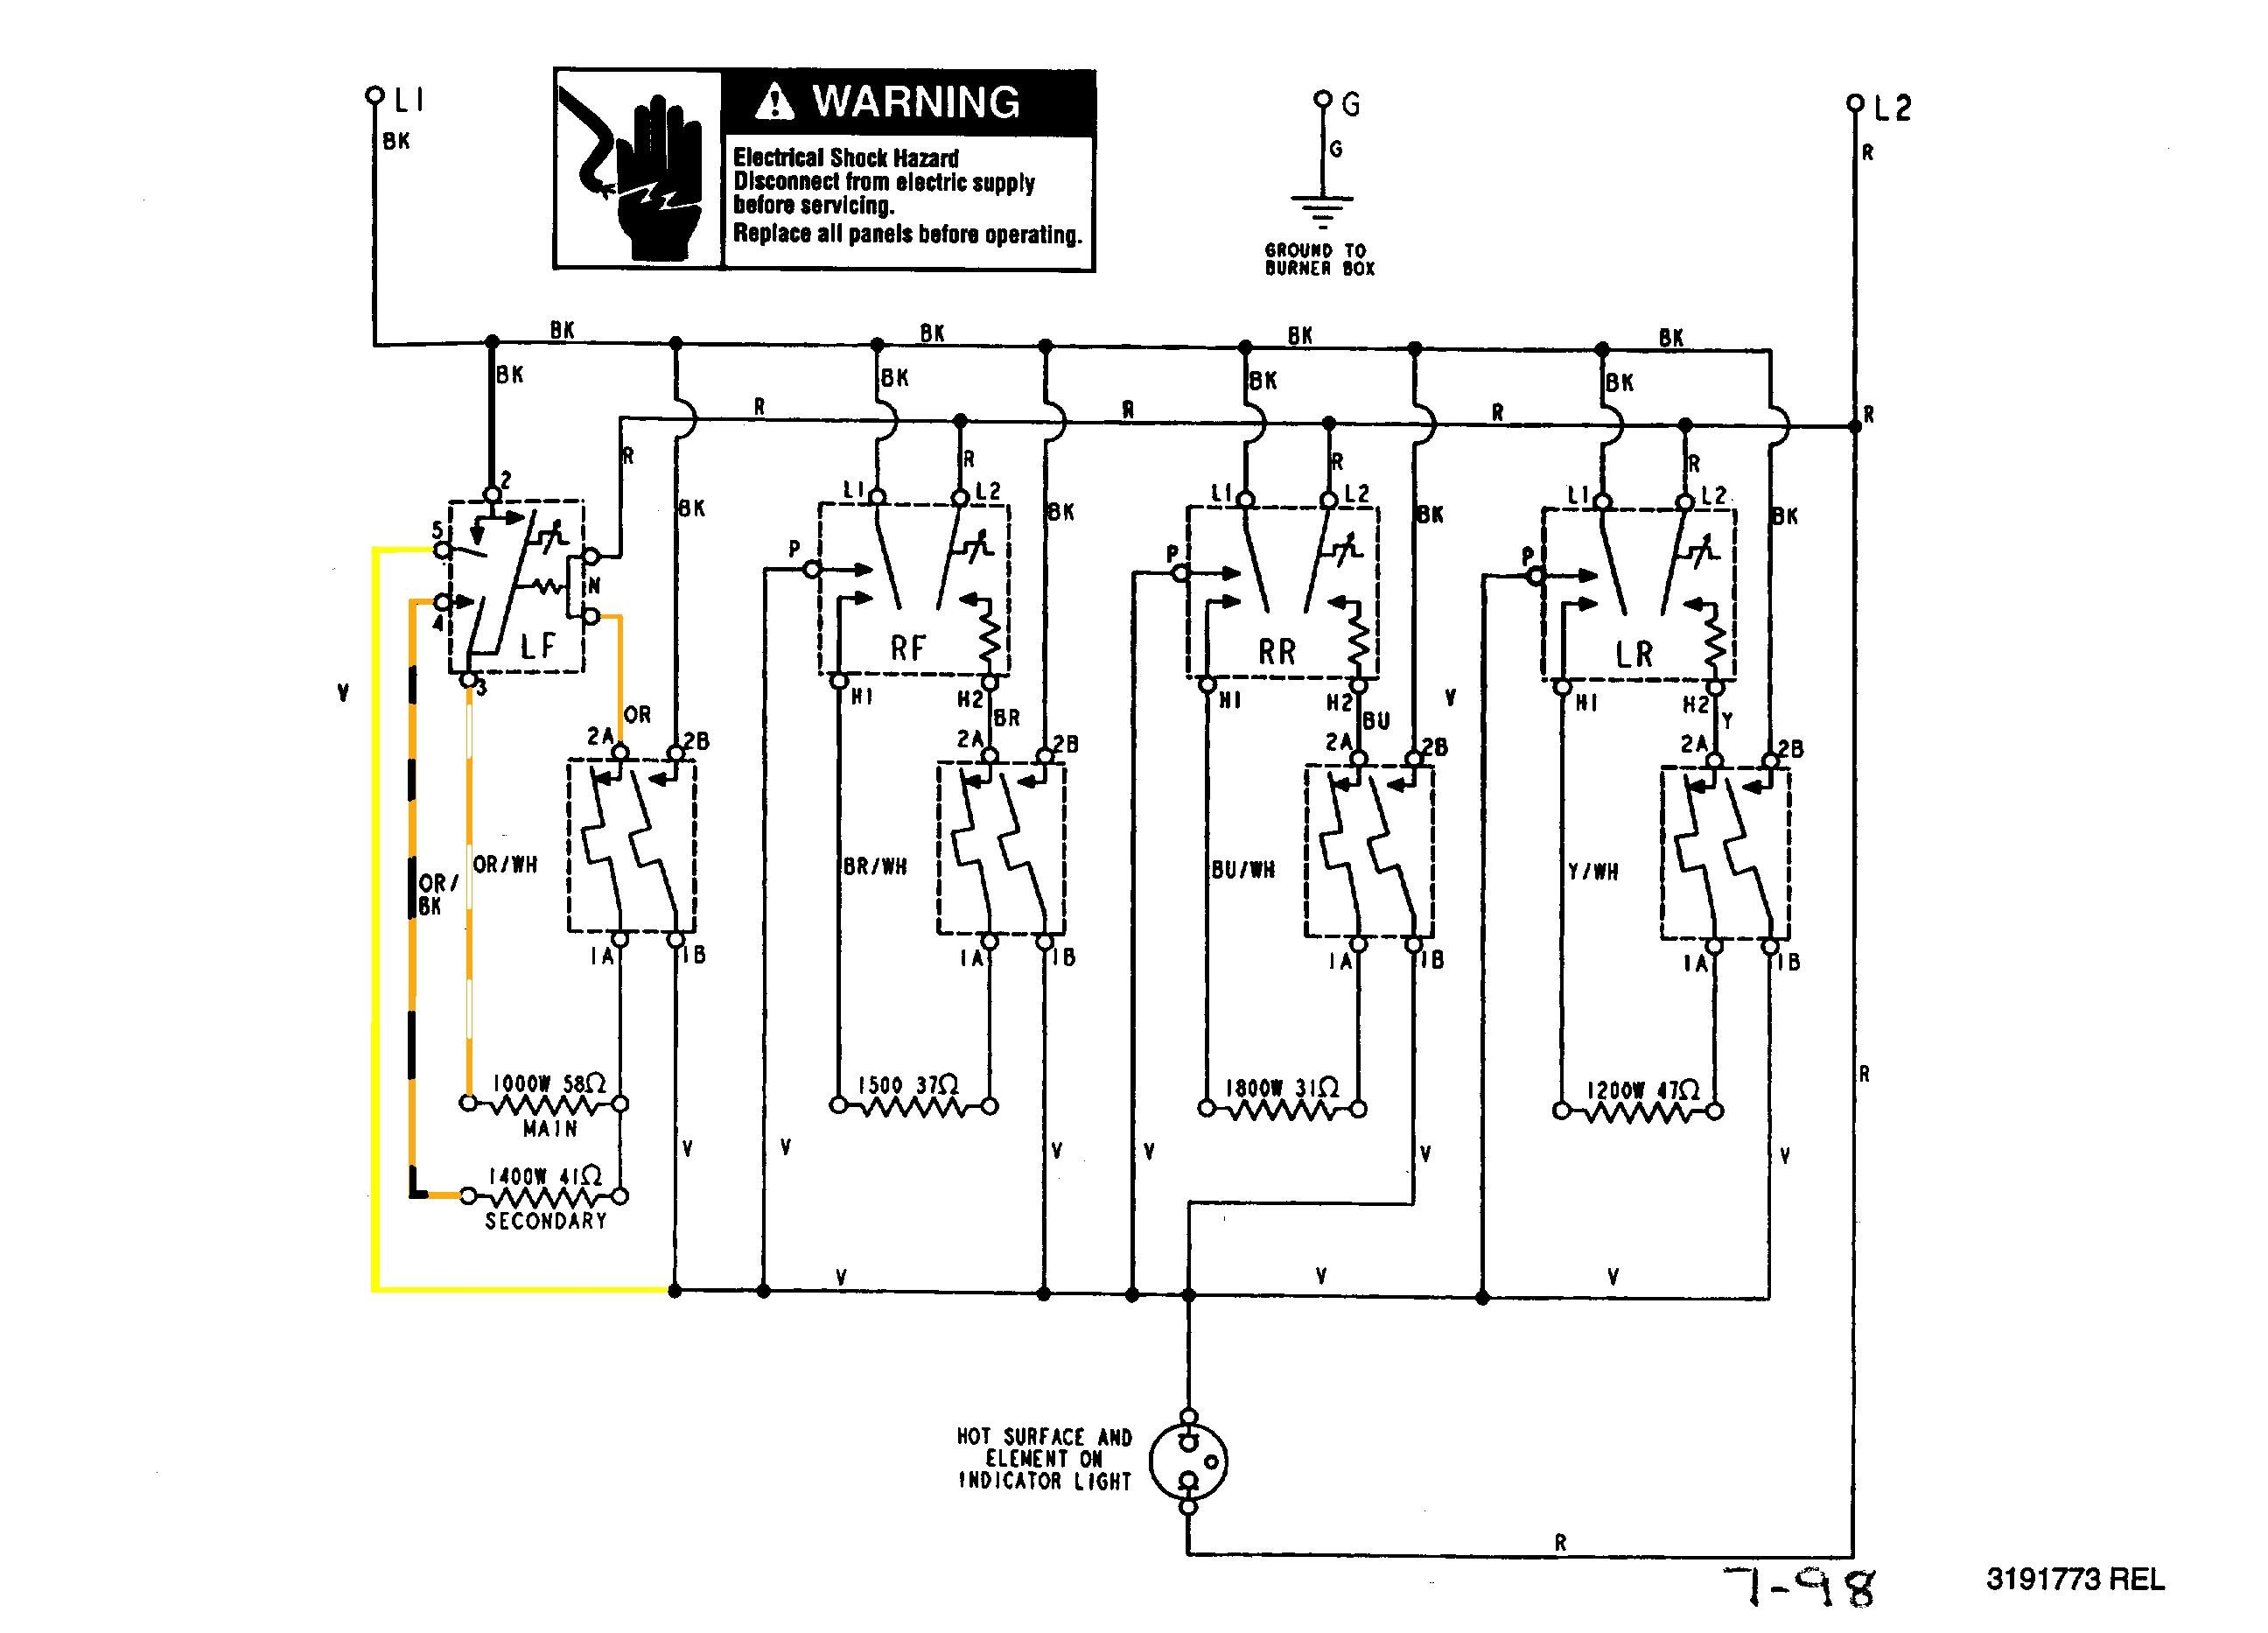 Wiring Diagram For Gjc Replacement Dual Switch